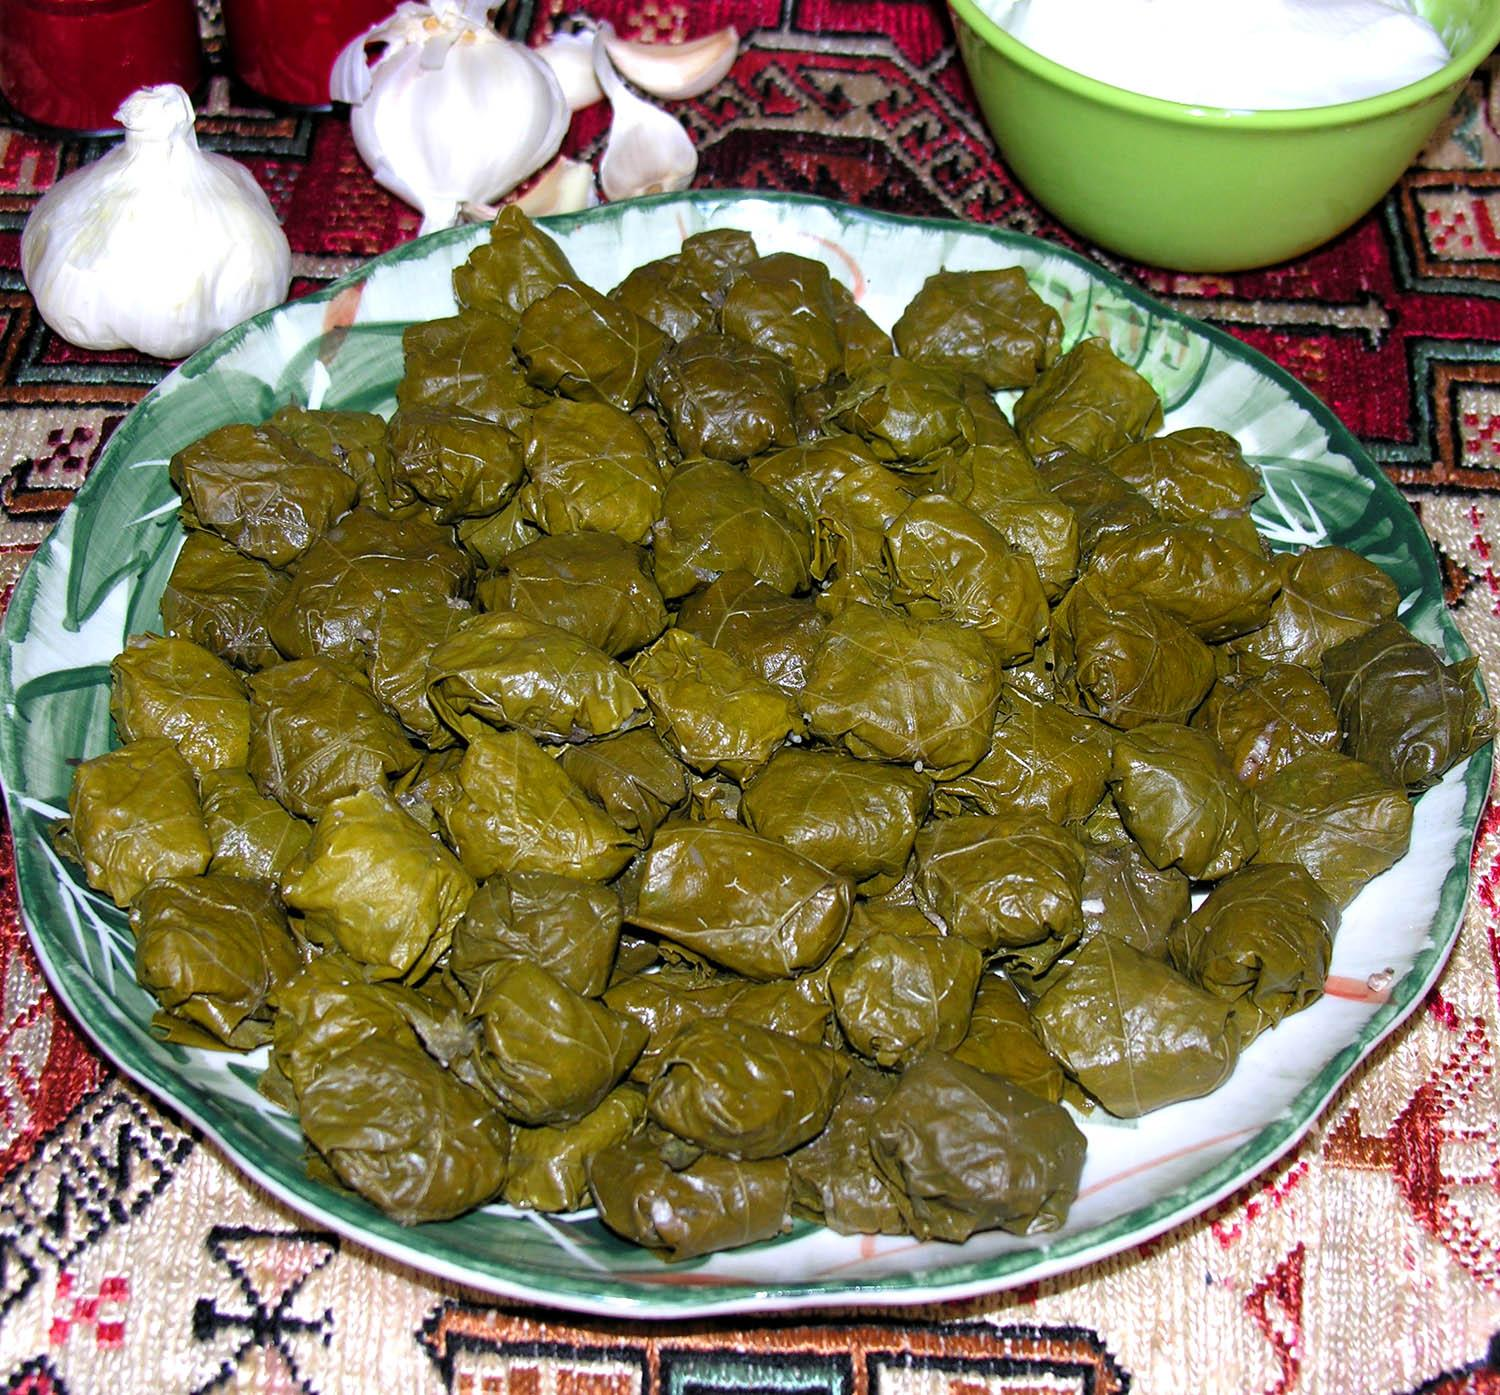 Azerbaijan's dolma may become the UNESCO intangible cultural heritage